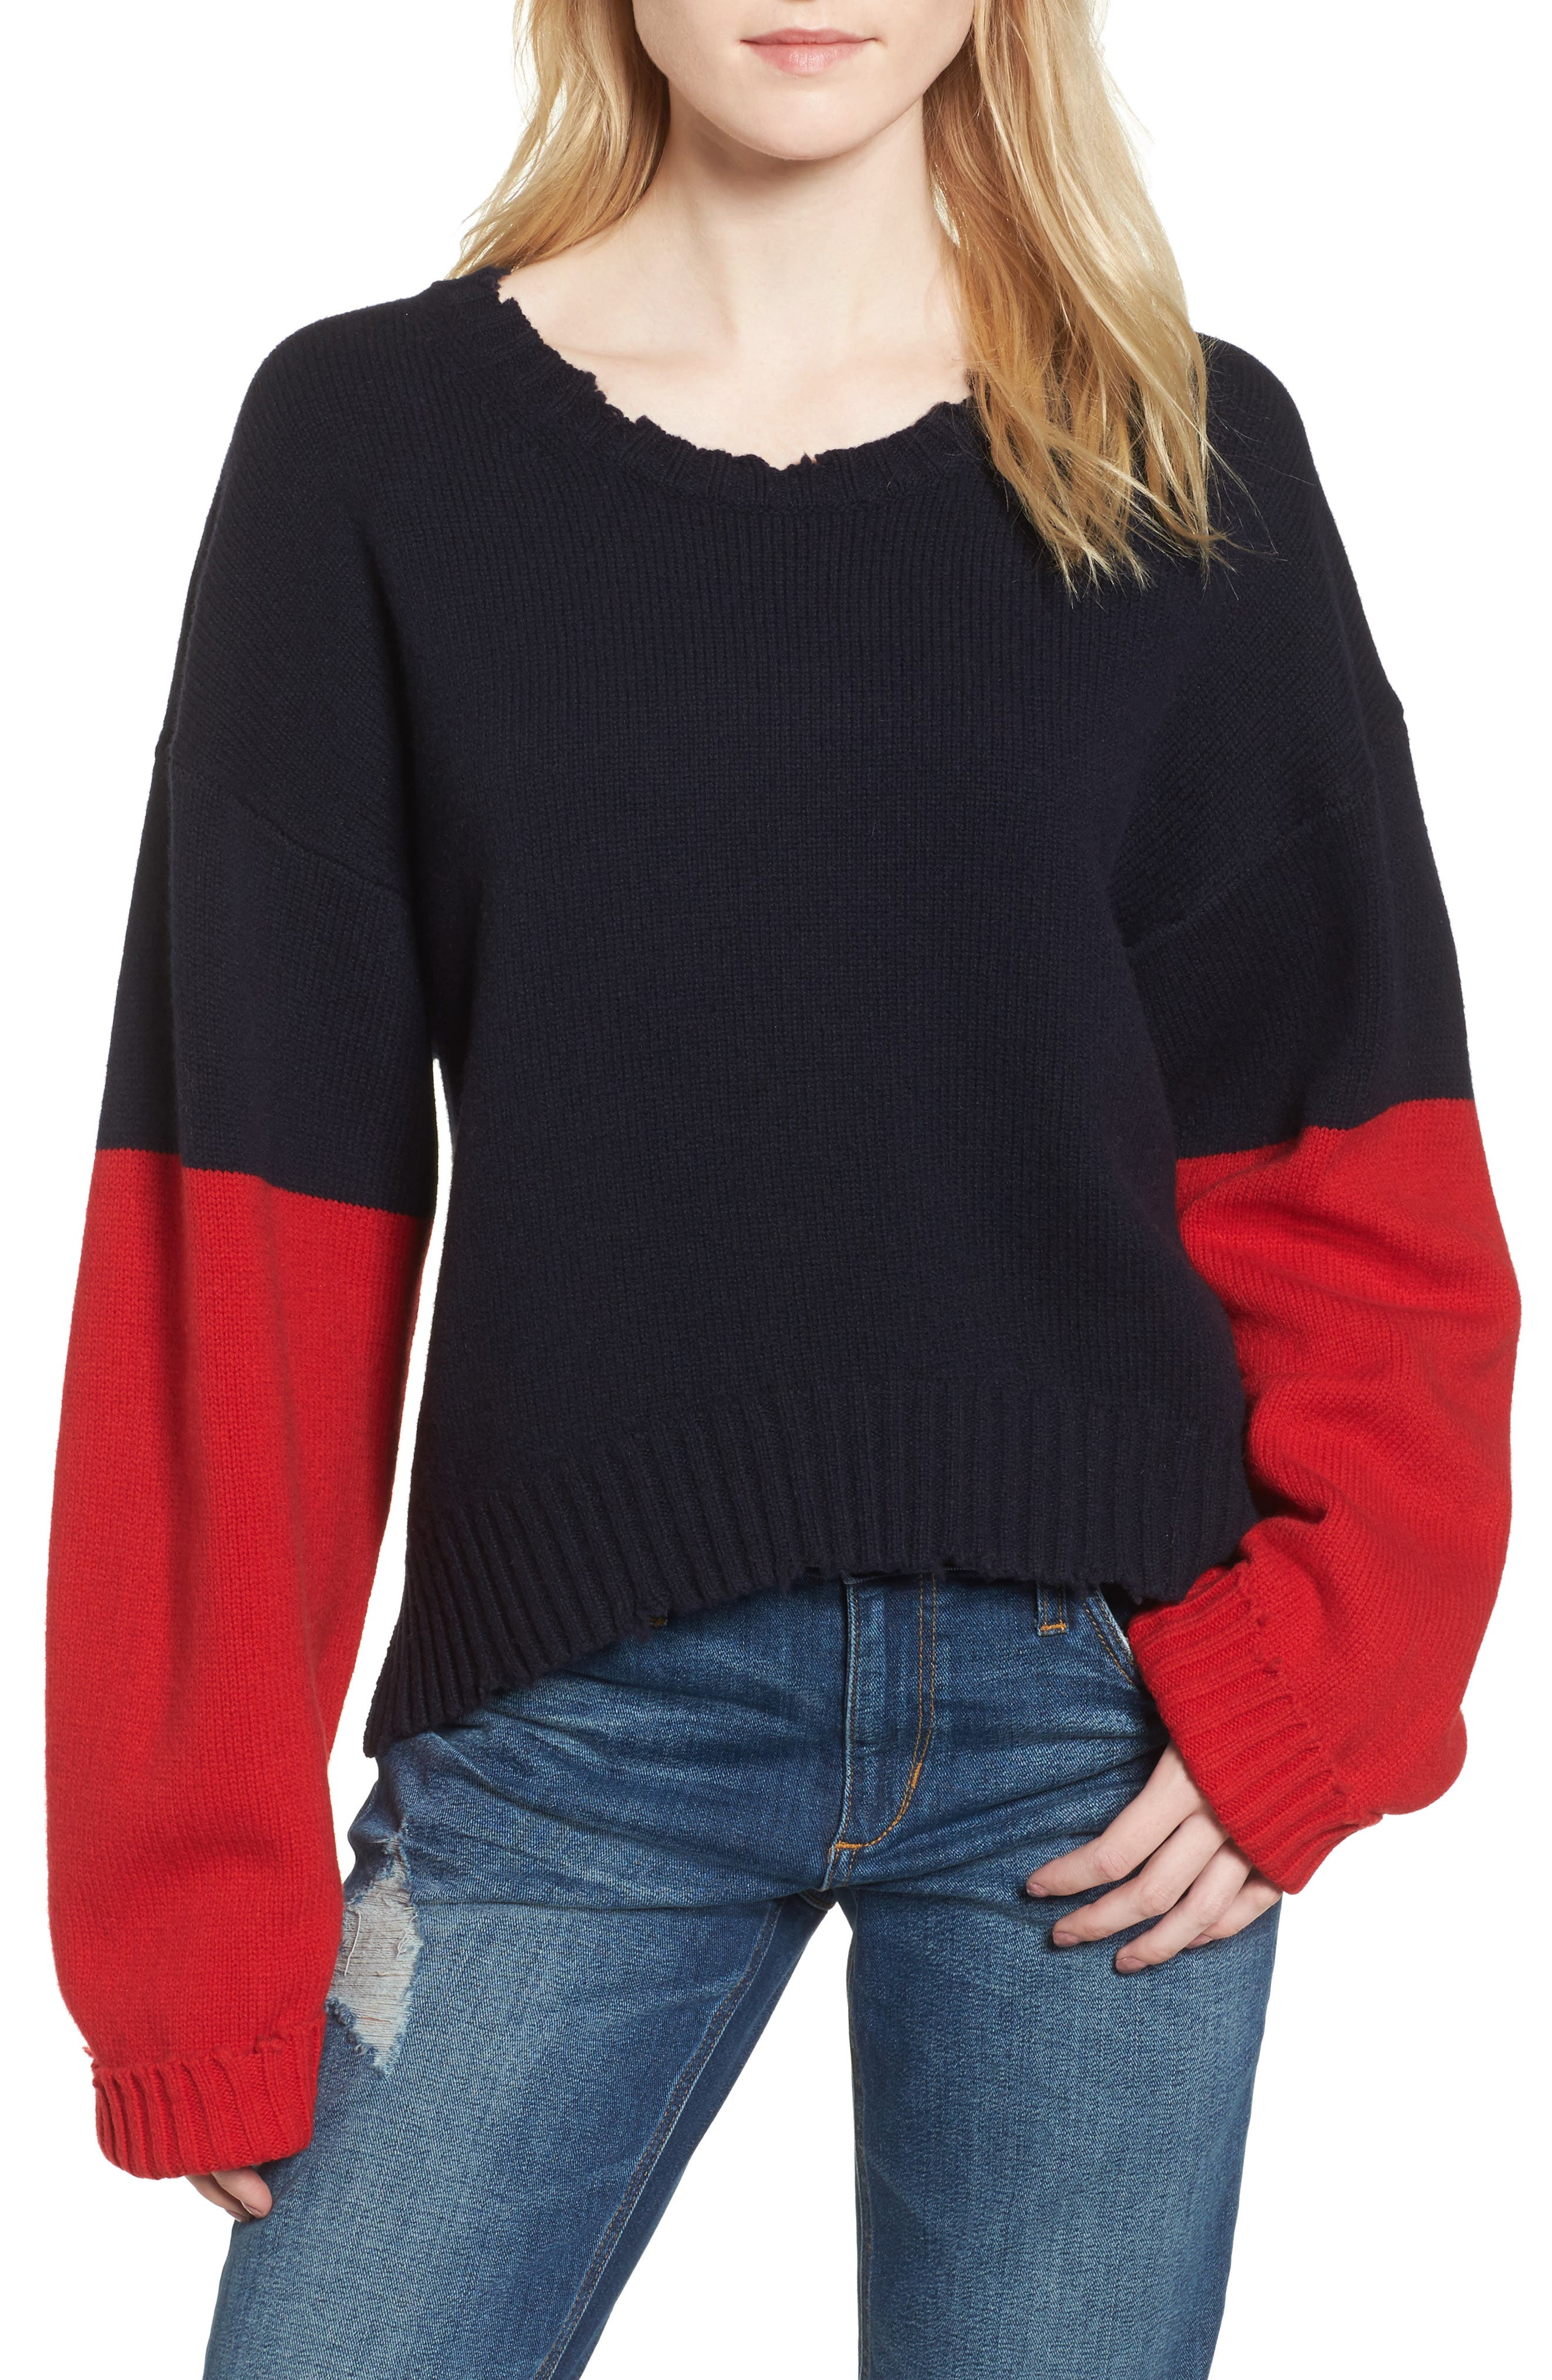 Clarys Sweater,                             Main thumbnail 1, color,                             Oxford